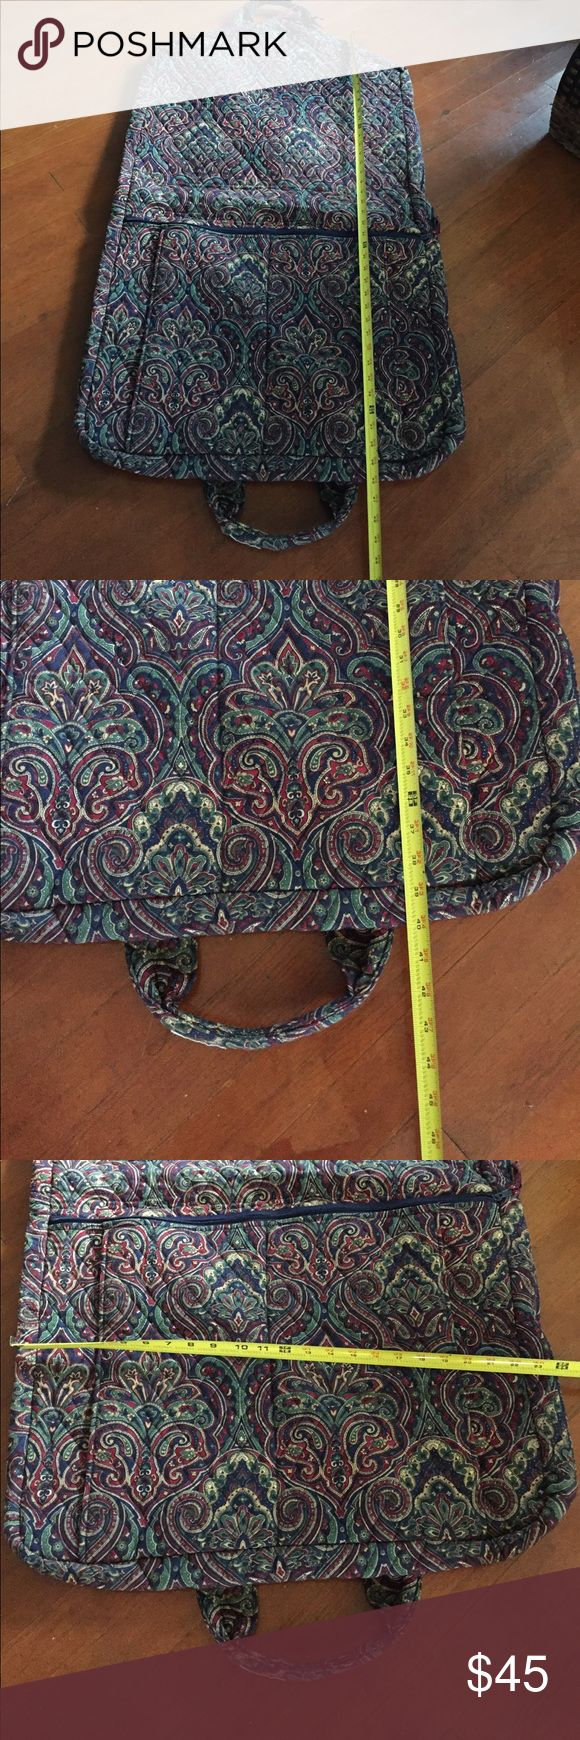 Vera Bradley Garment Bag A multi color garment bag that measure about 40 inches from top to end and about 24 inches from side to side in good used condition. Vera Bradley Bags